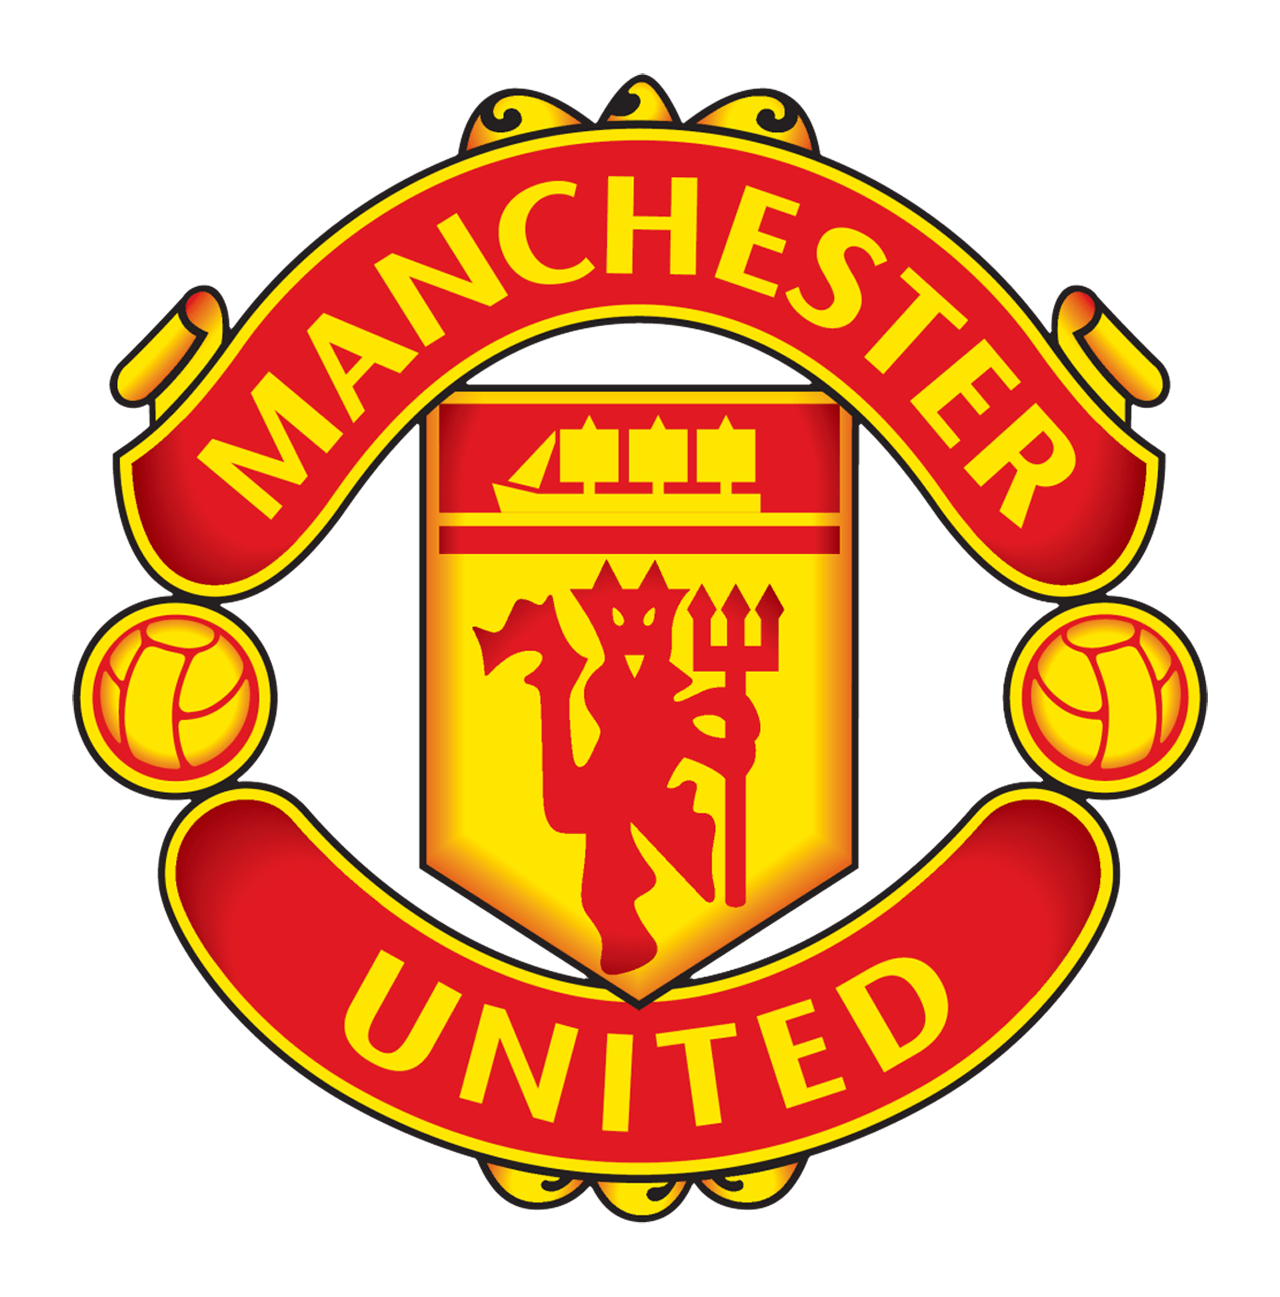 manchester united logo transparent png stickpng rh stickpng com man united logo vector man united logo url